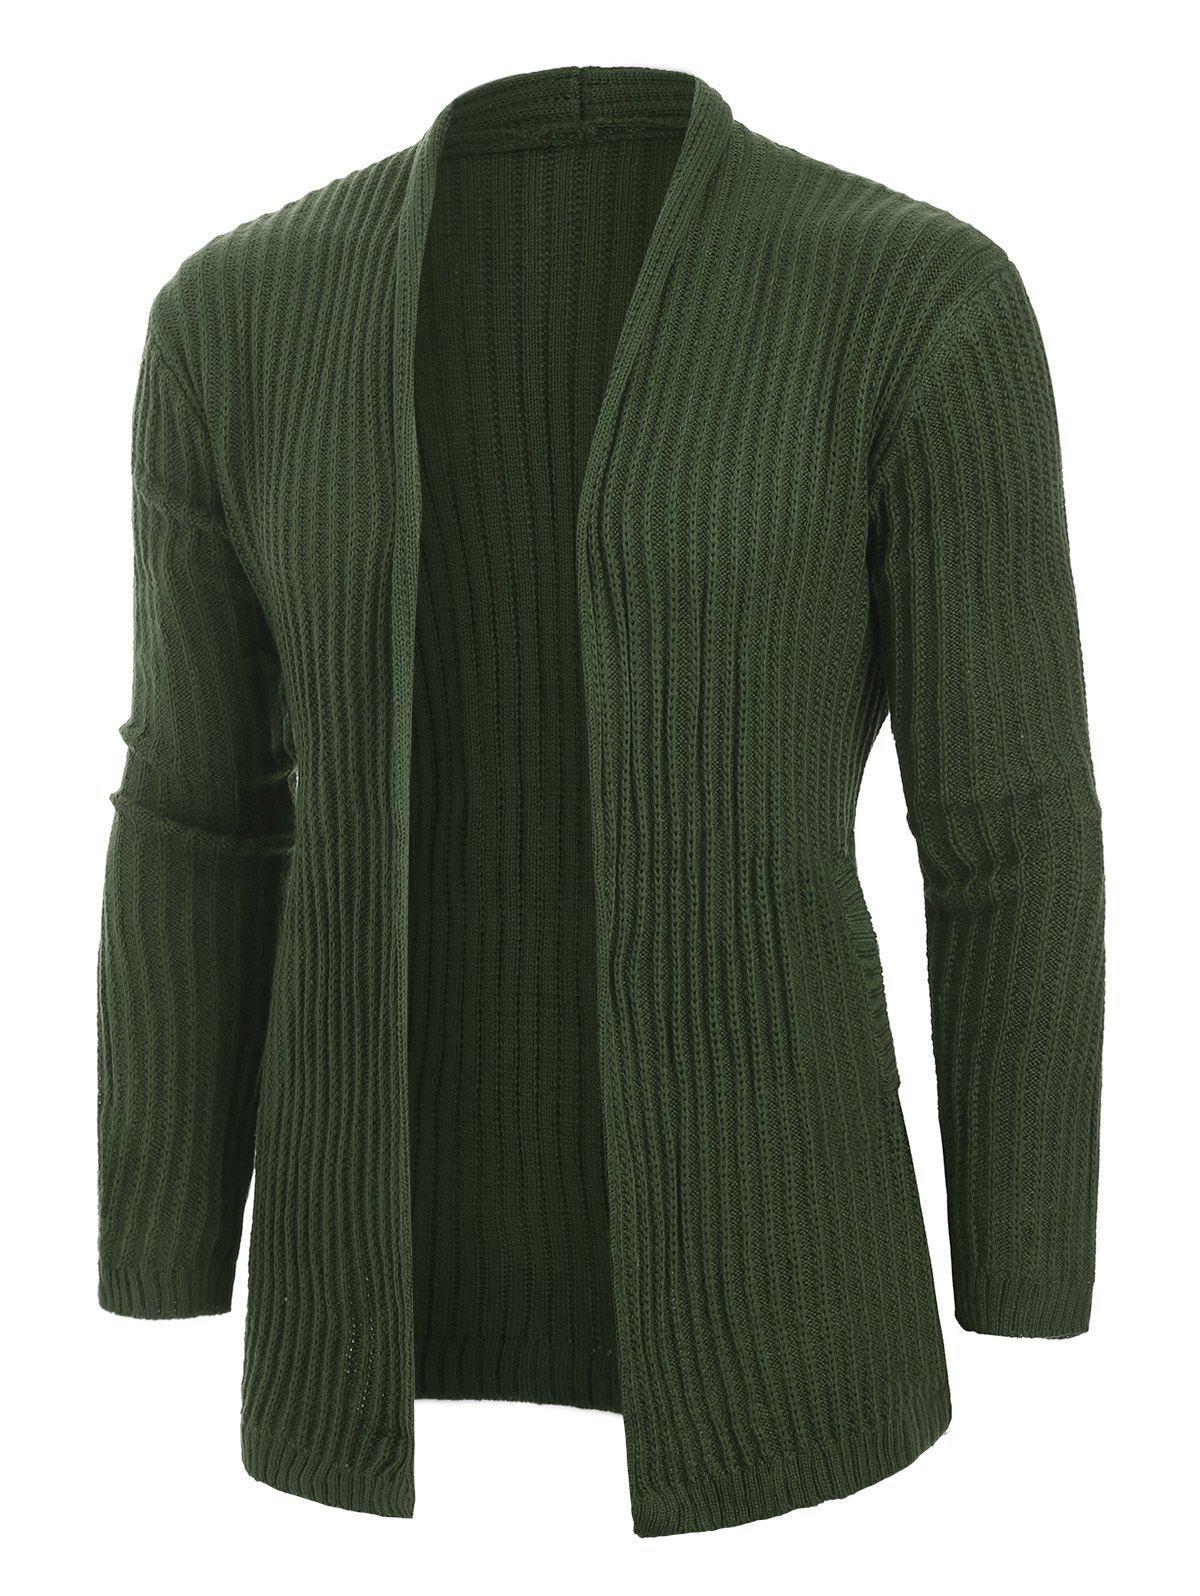 Solid Color Casual Pocket Cardigan - ARMY GREEN M